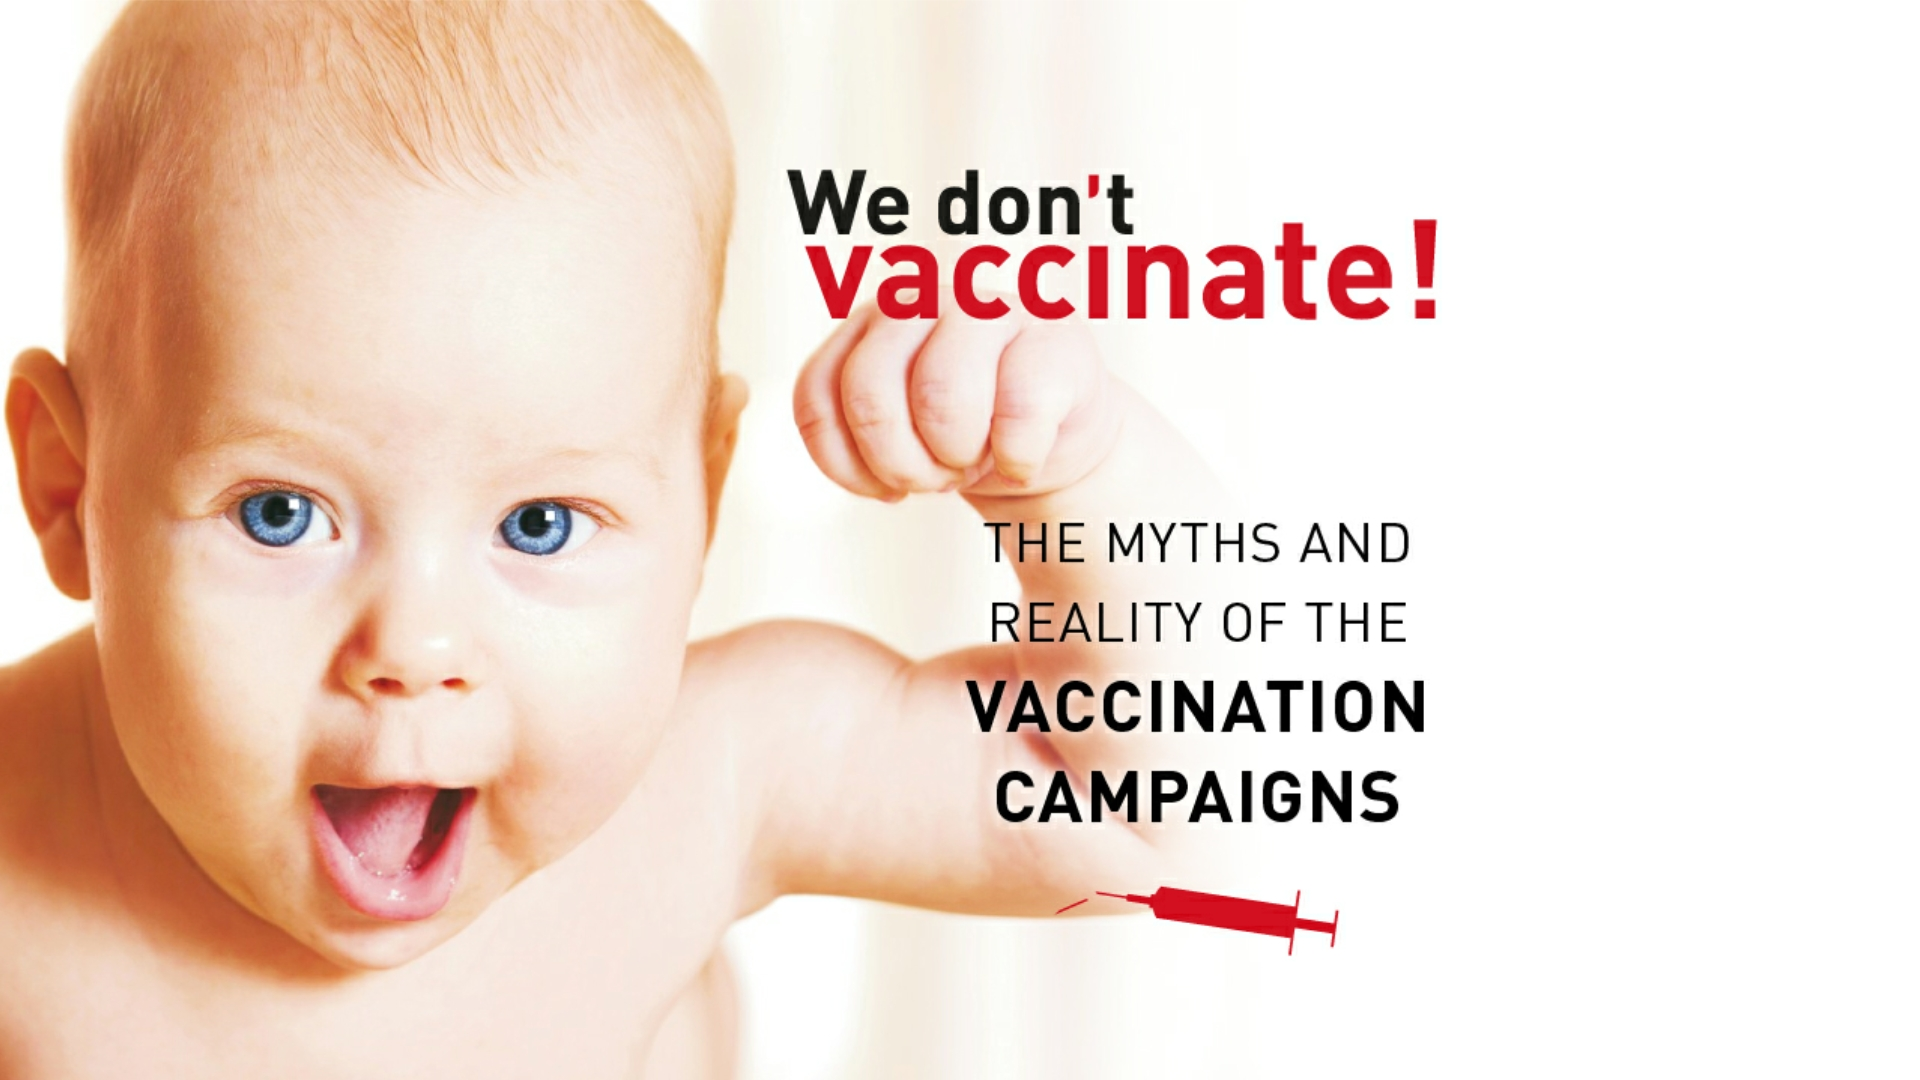 We don't vaccinate! movie.